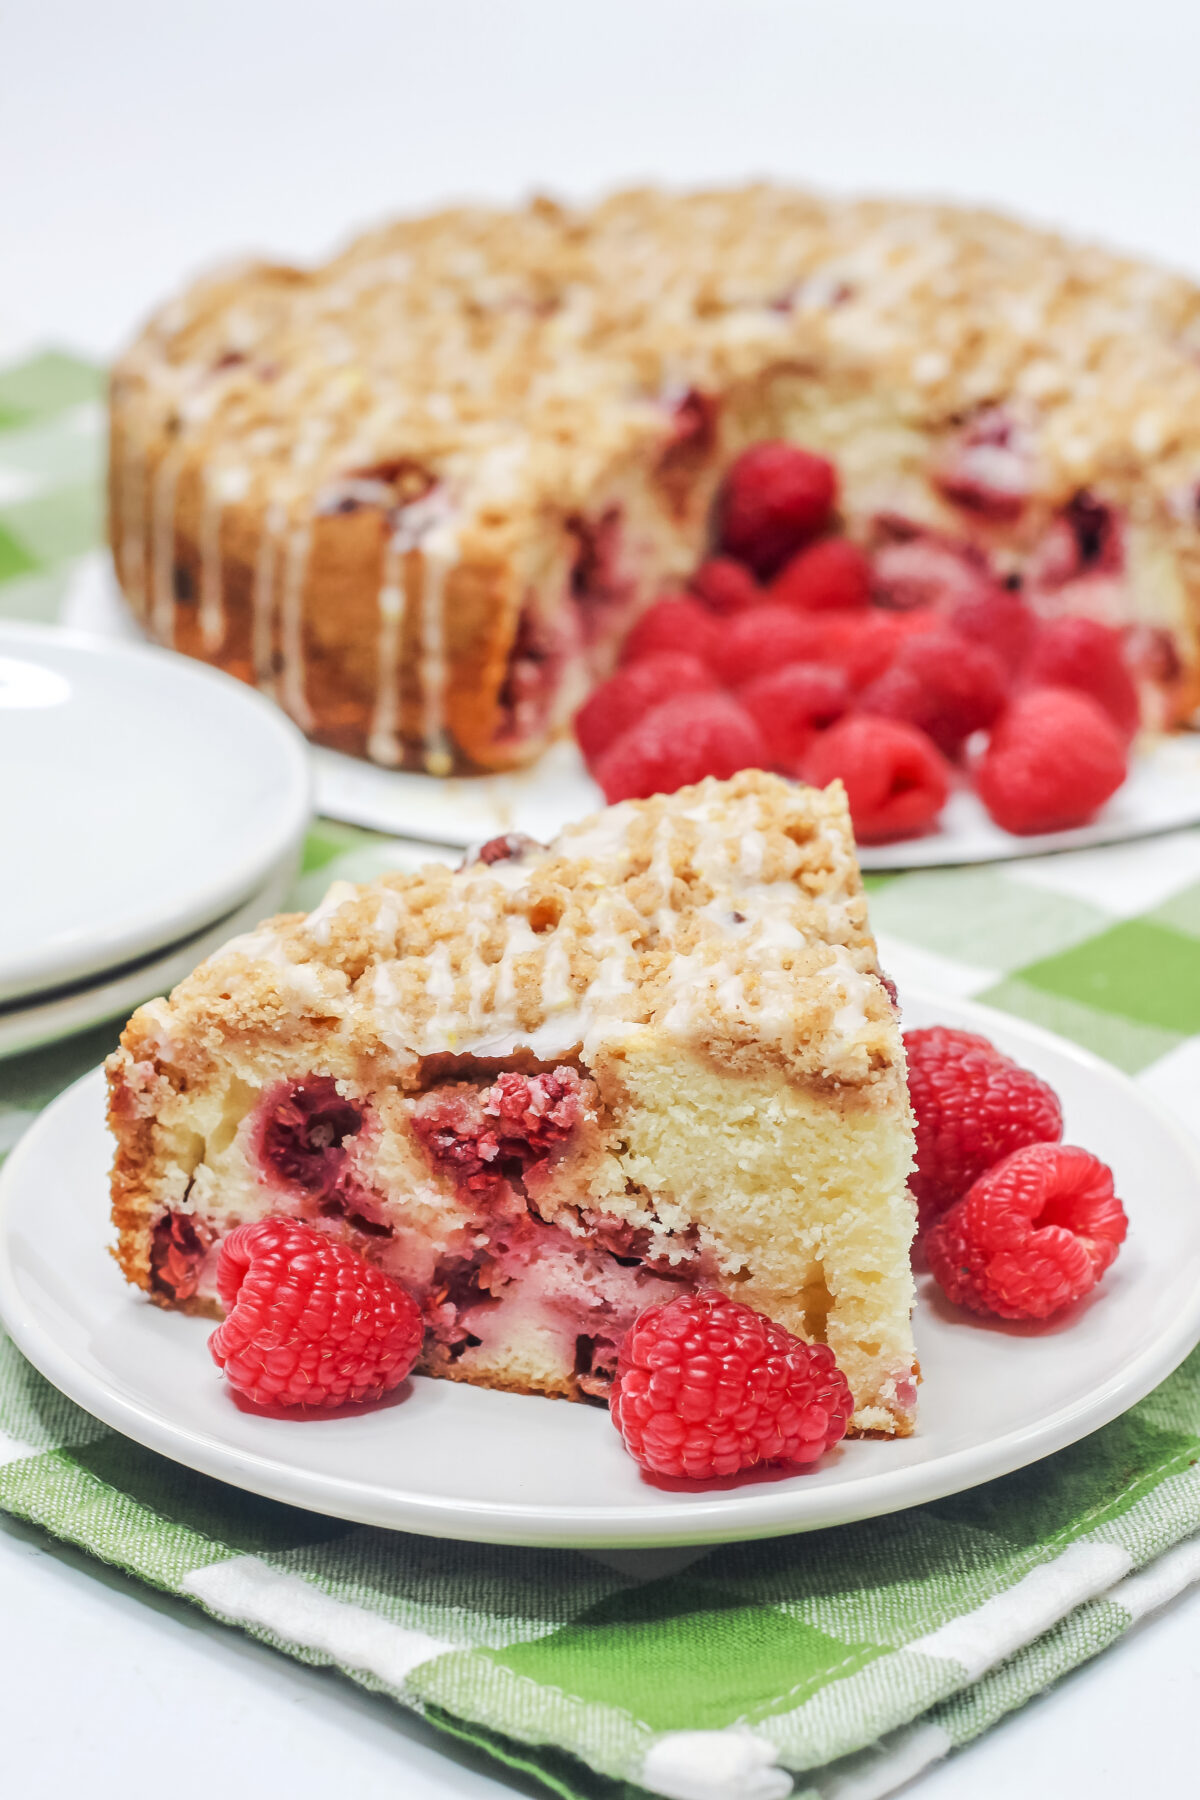 This Raspberry Crumble Cake features a tender cake dotted with fresh raspberries, topped with crumble, and drizzled over with a lemon glaze.